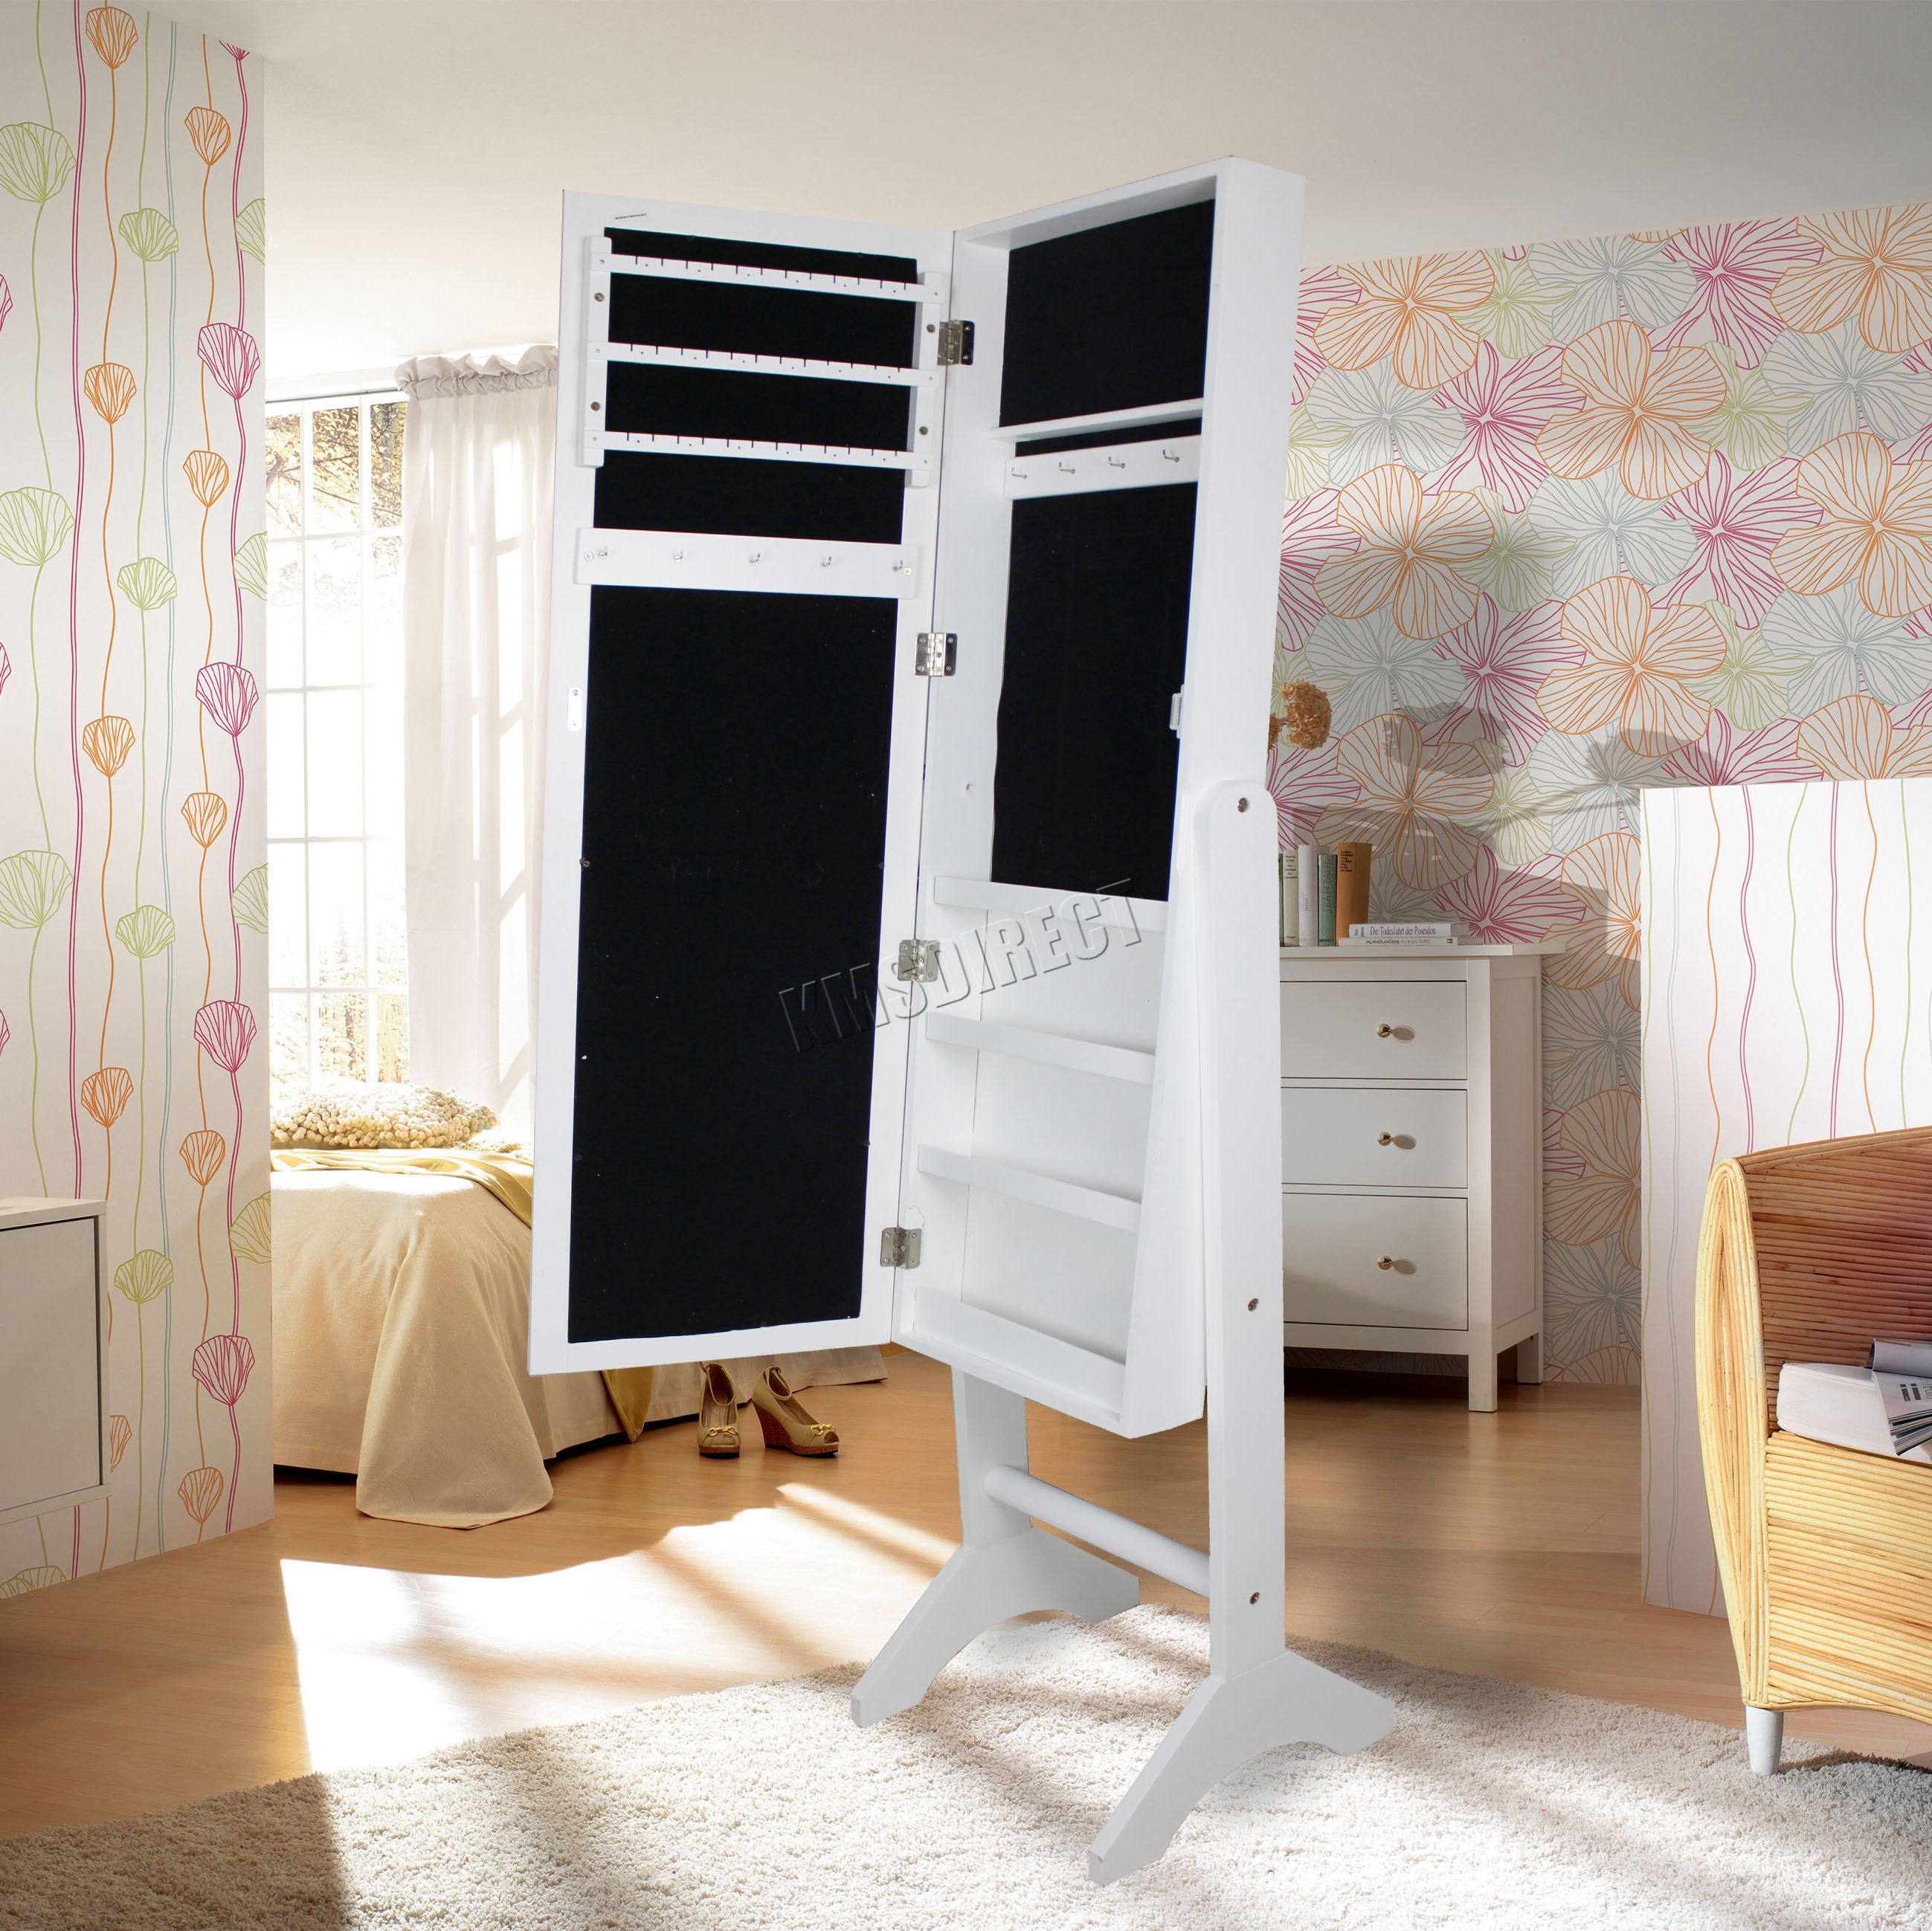 closets woodworking where small how storage treasured more wood create could closet awkward large suite a with numerous ruck store master in mode luxurious into she jewelry layout hidden to her its space and collection bath hallways